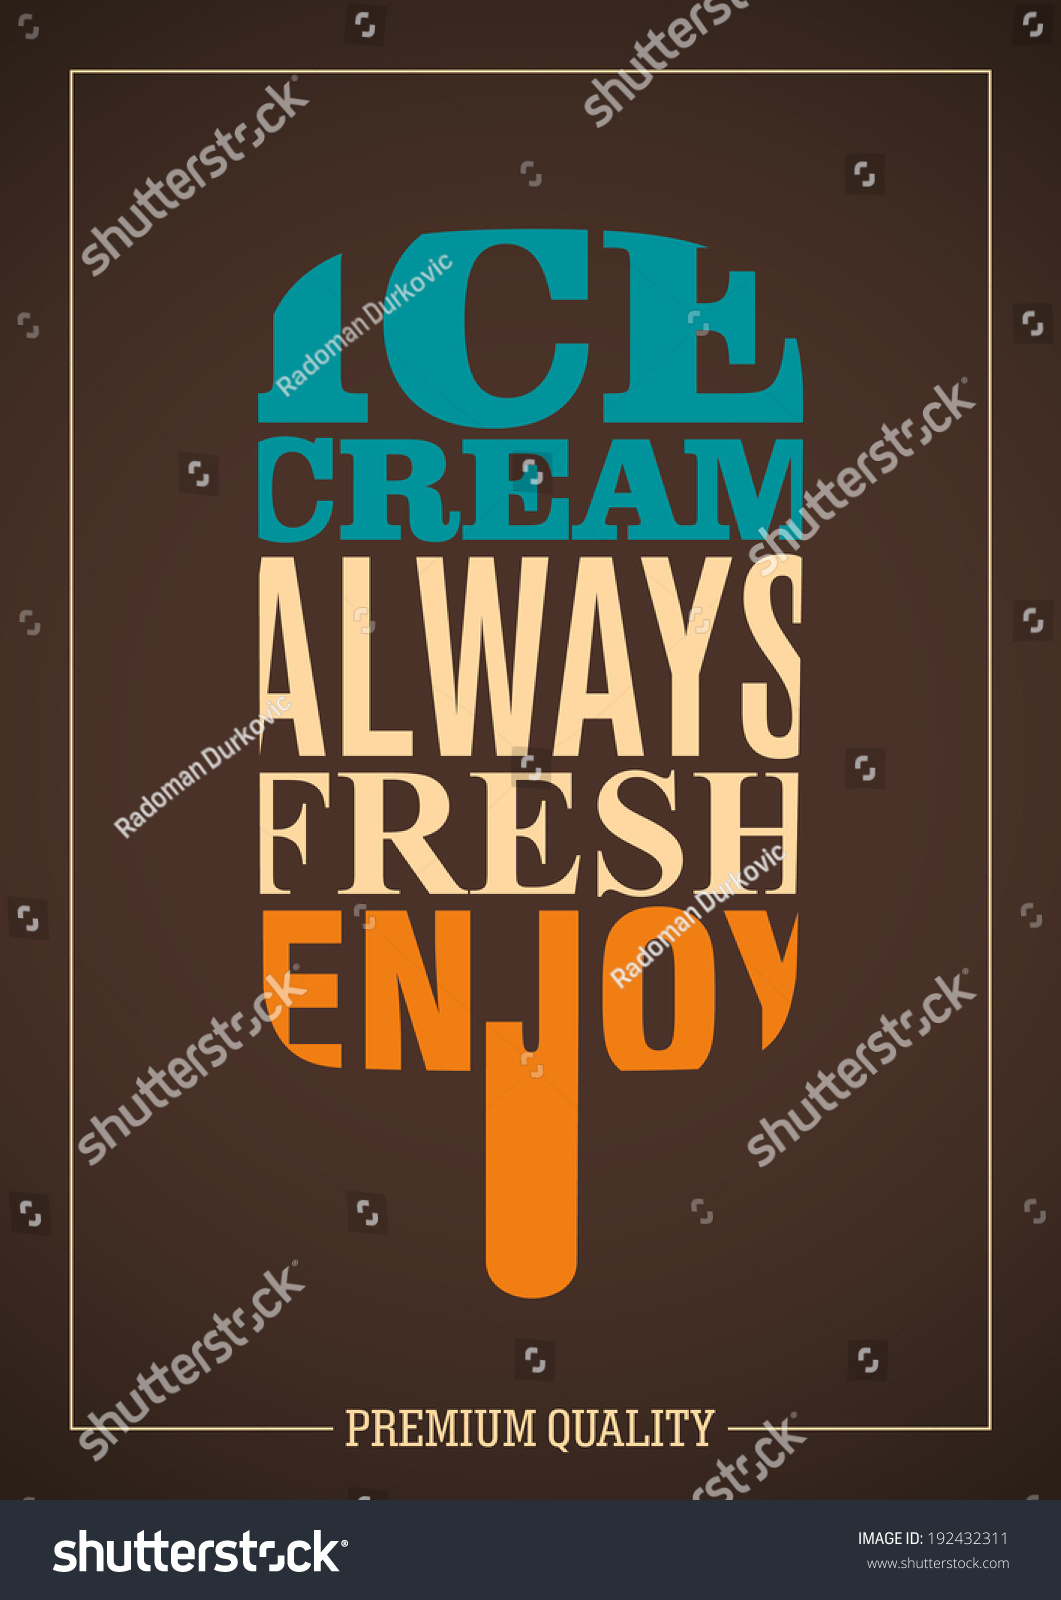 Poster design typography - Ice Cream Poster Design With Typography Vector Illustration